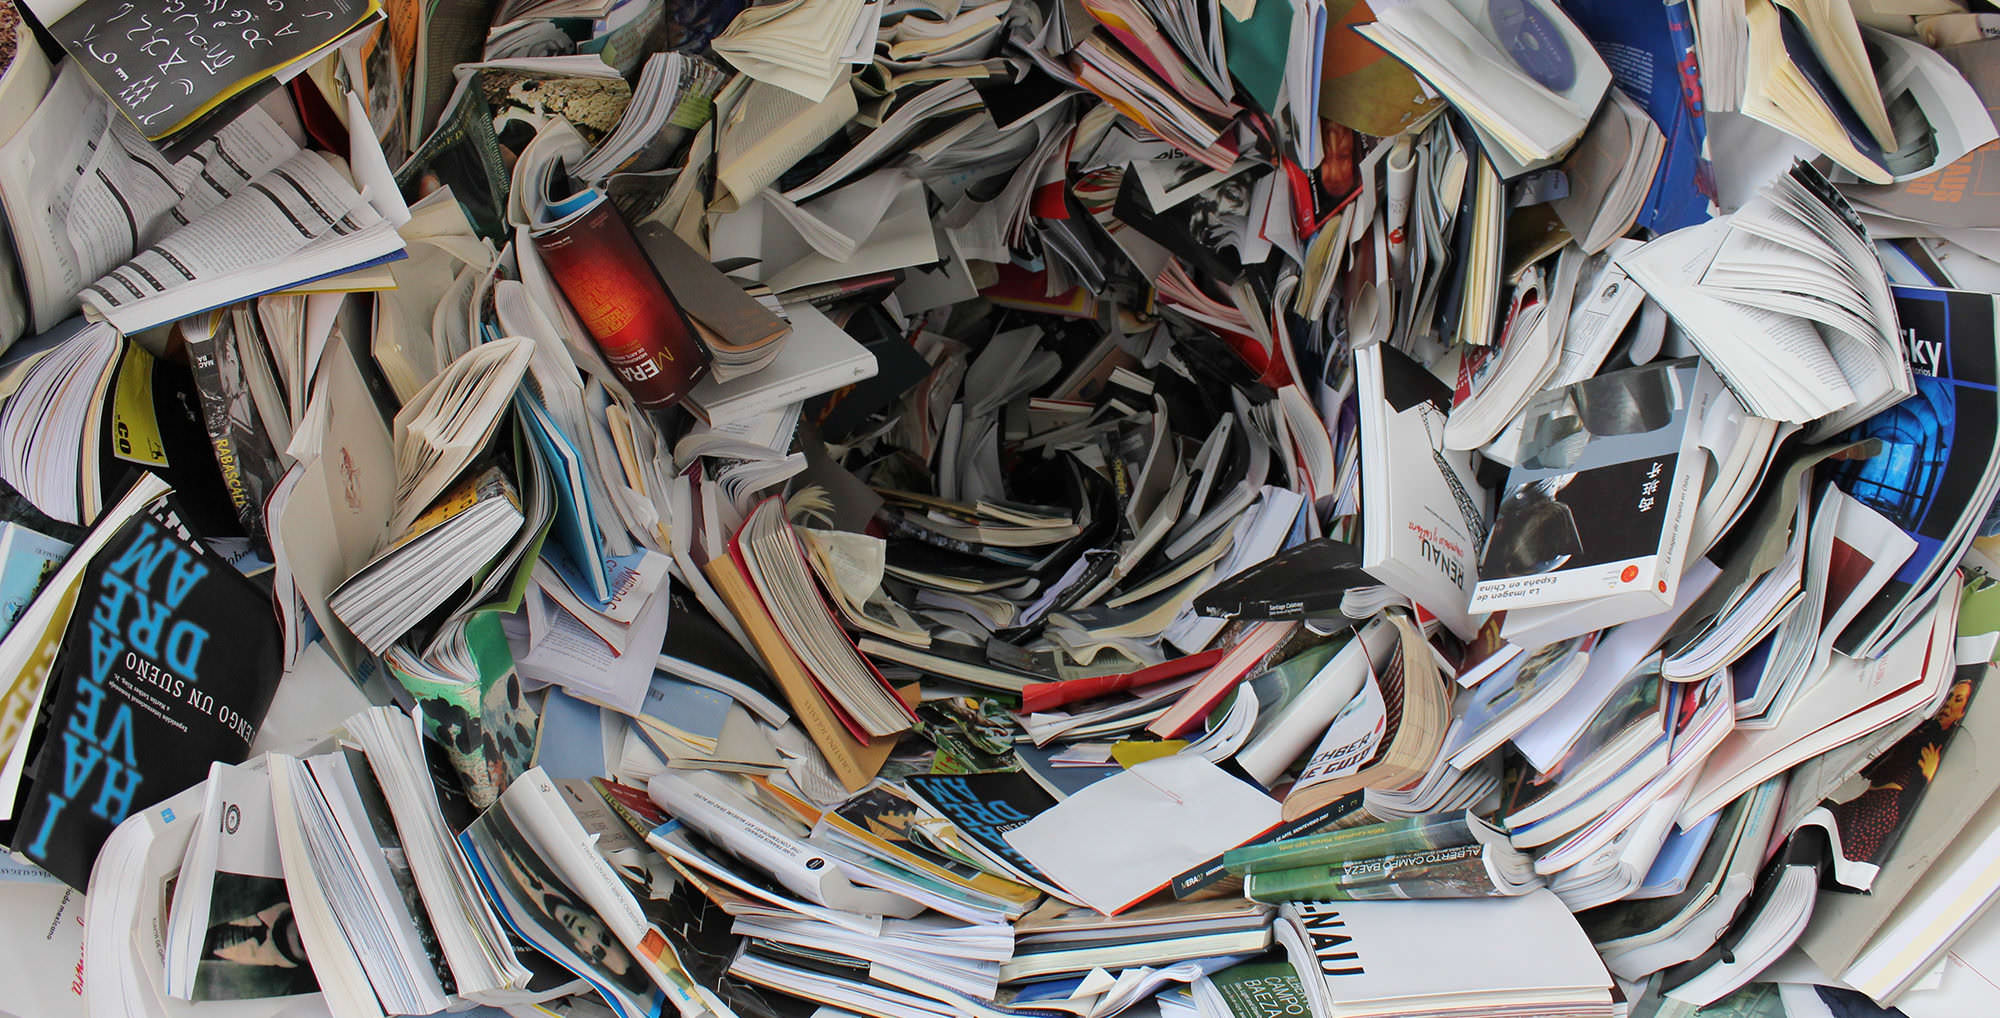 Enormous number of books swirling inwards like a whirlpool - what huge scoping reviews must be like!